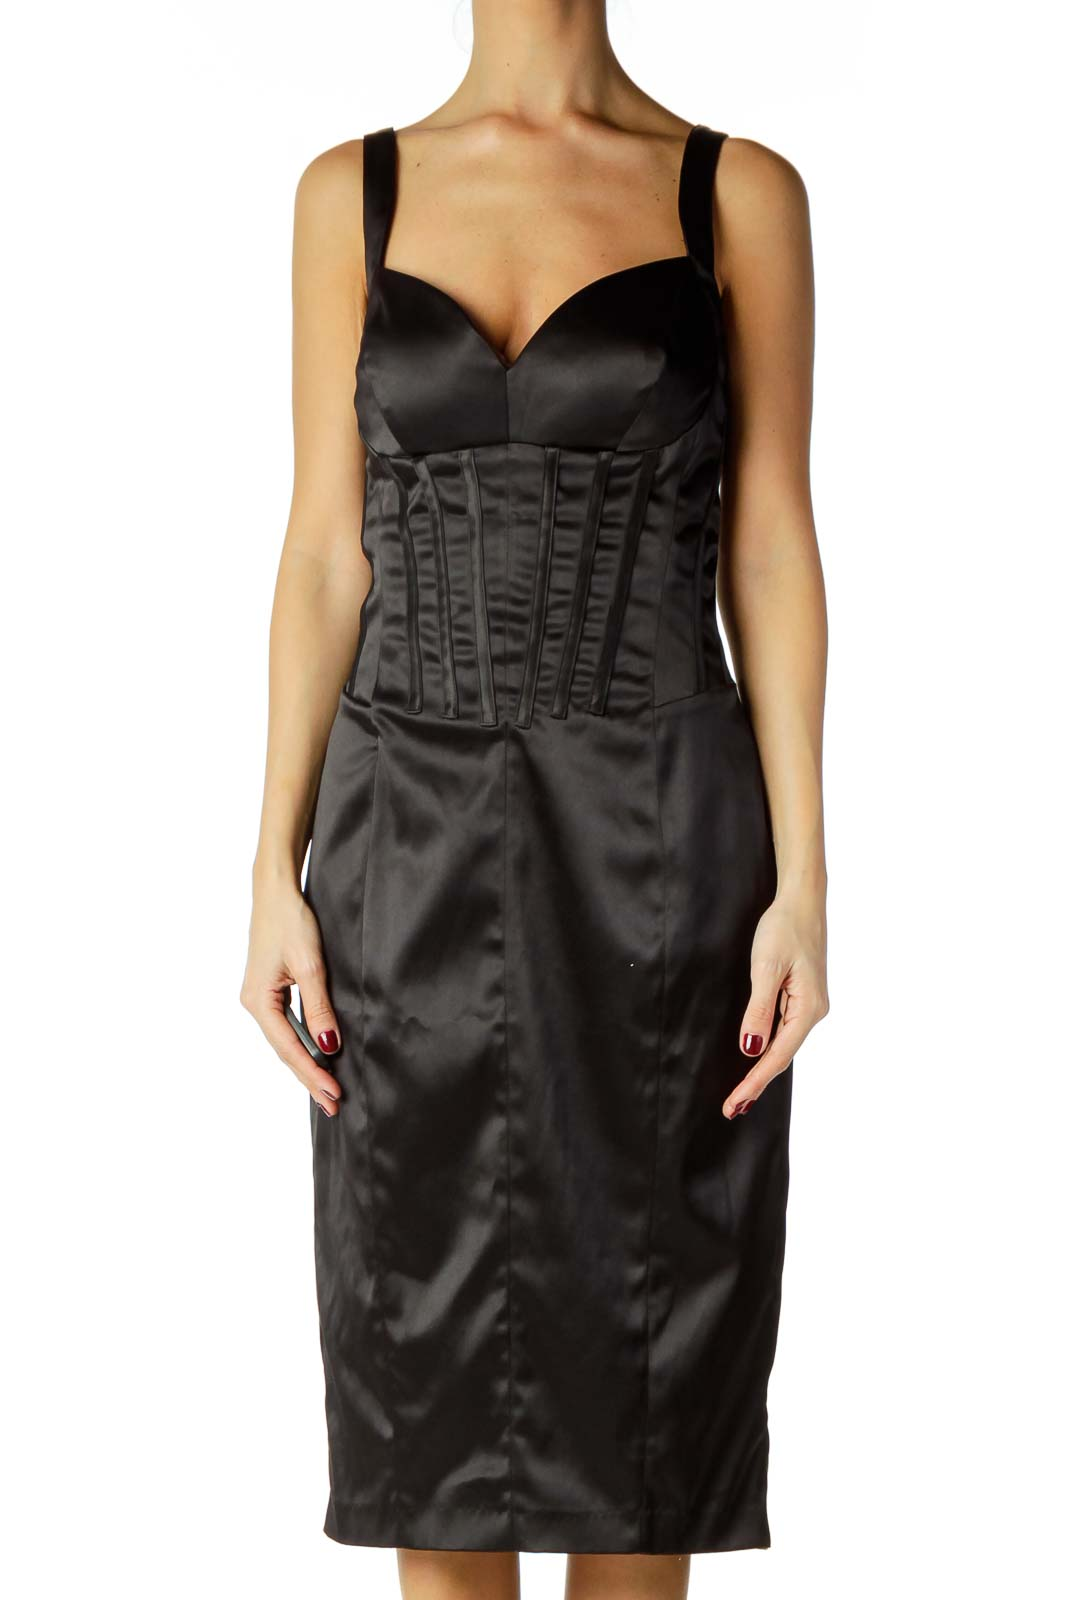 Black Satin Midi Cocktail Dress